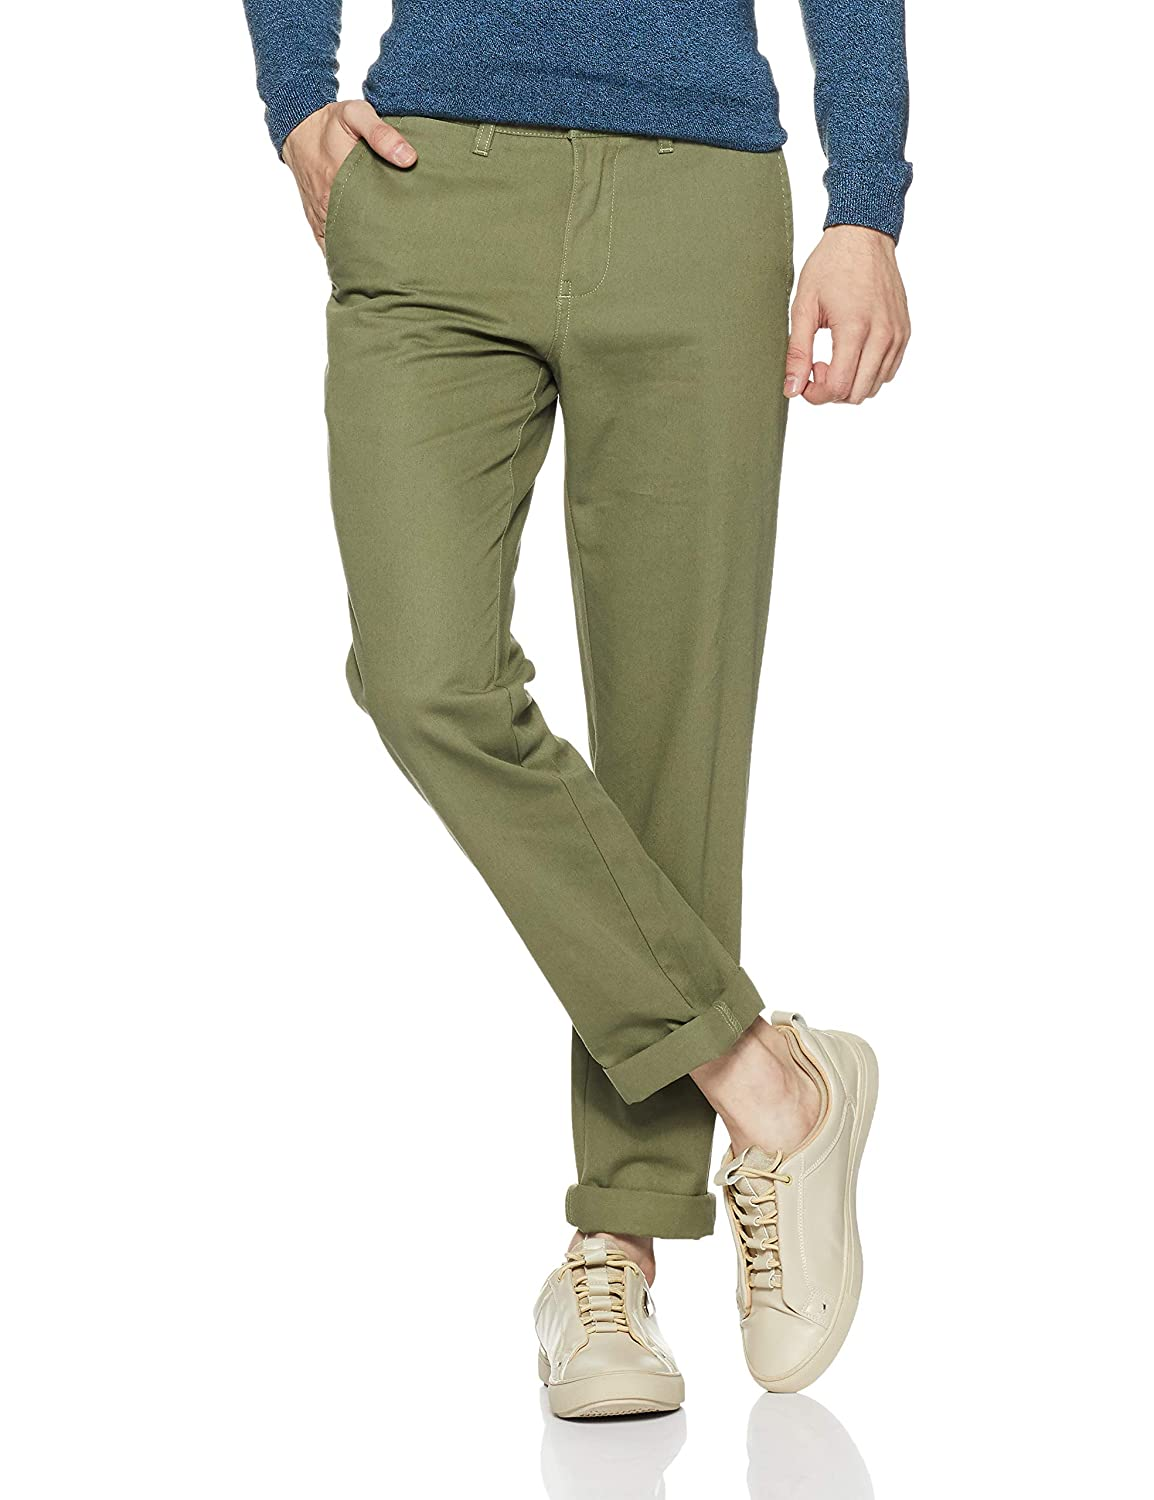 Symbol Amazon Brand Men's Slim Fit Chinos